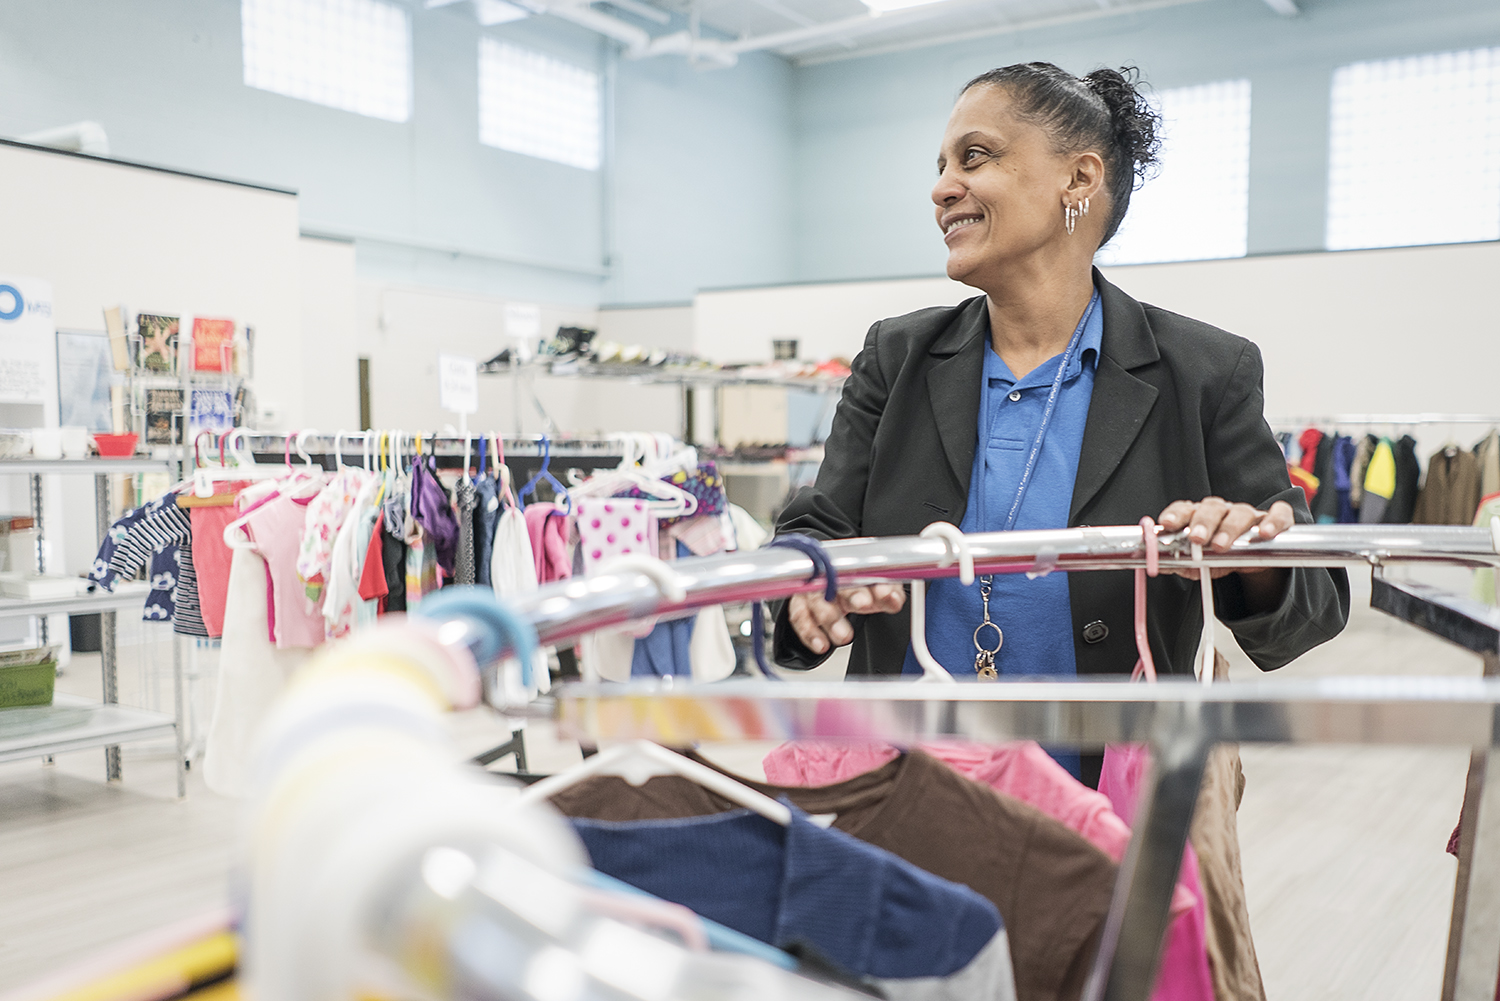 Flint, MI - Monday, December 18, 2017: Redonna Riggs, 47, of Flint, smiles at a volunteer across the room at the Catholic Charities Community Closet at the Center for Hope. 